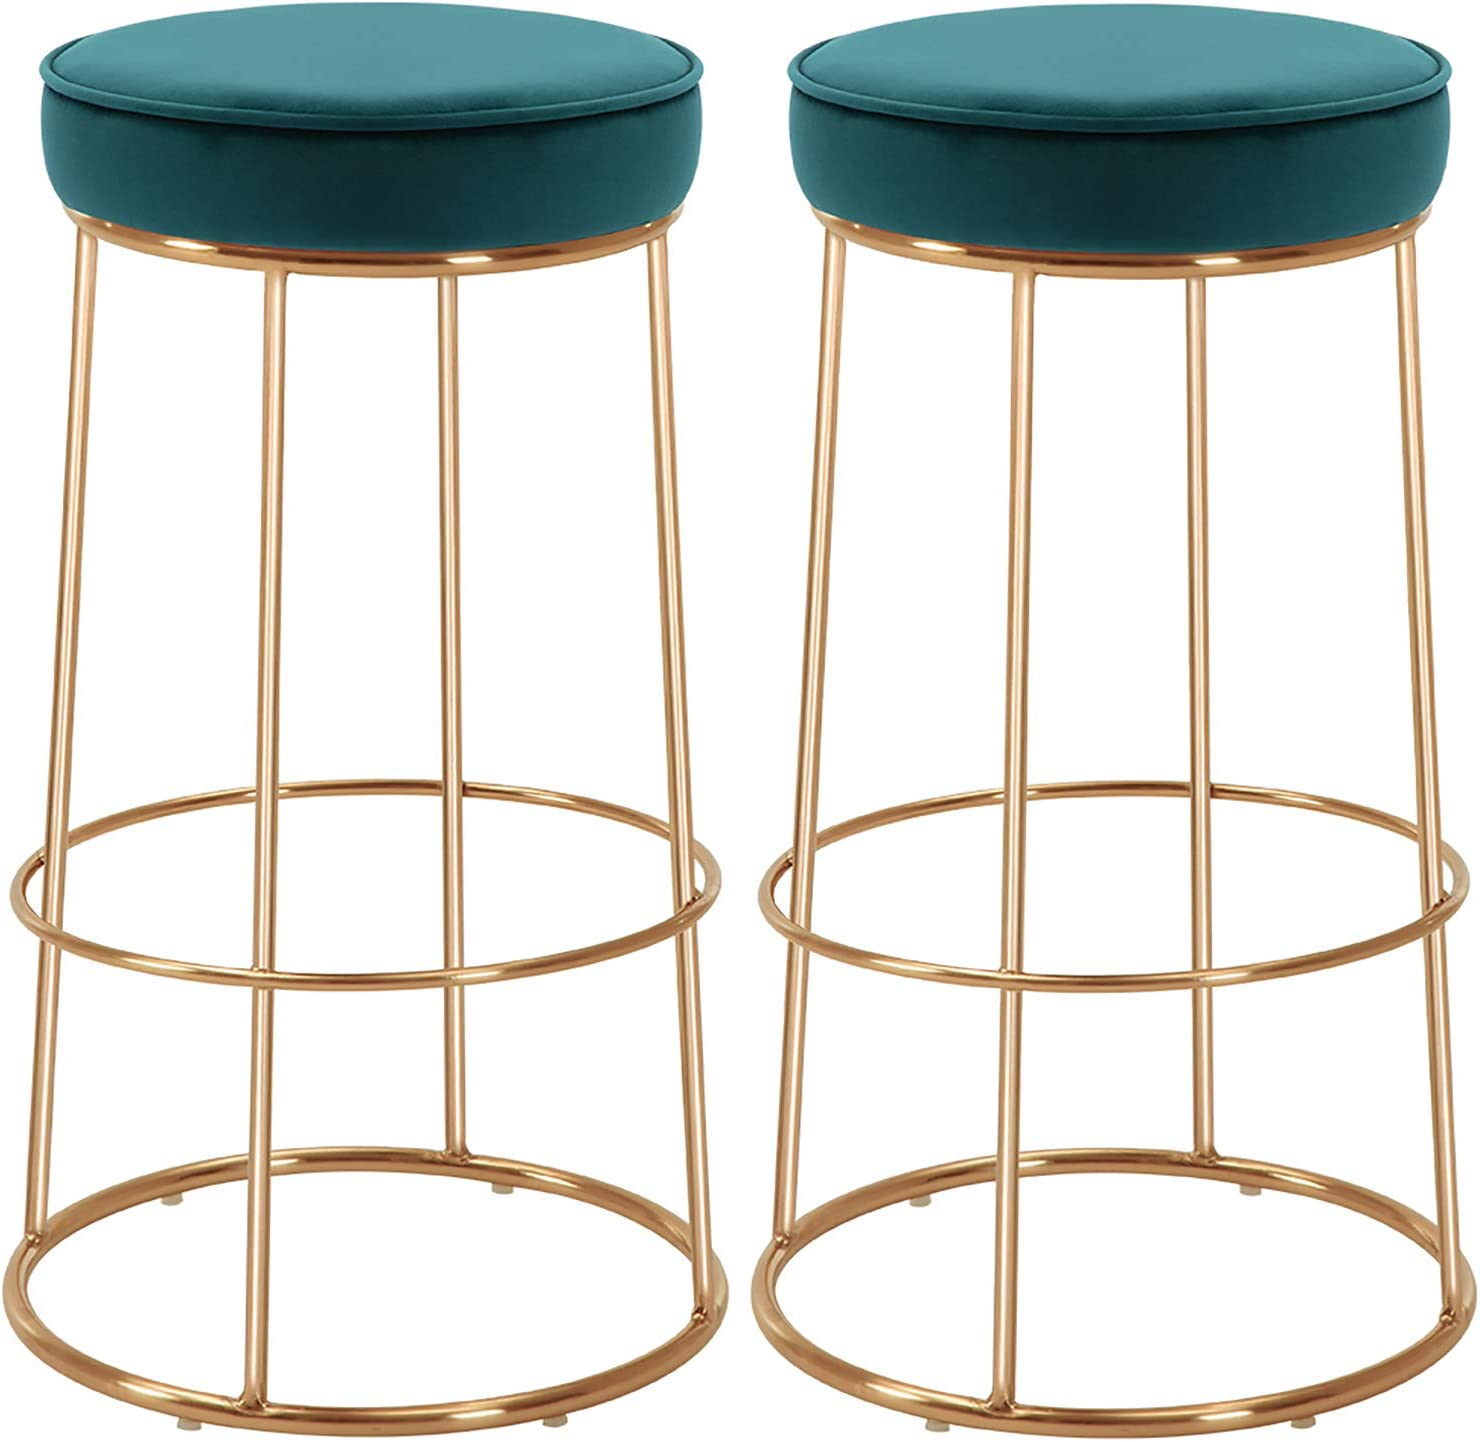 Duhome Velvet Bar Stools Set of 2, Gold Bar Stool Kitchen Stool, Modern Counter Height Bar Stools Breakfast Dining Chairs Counter Stool 28 Inches Atrovirens